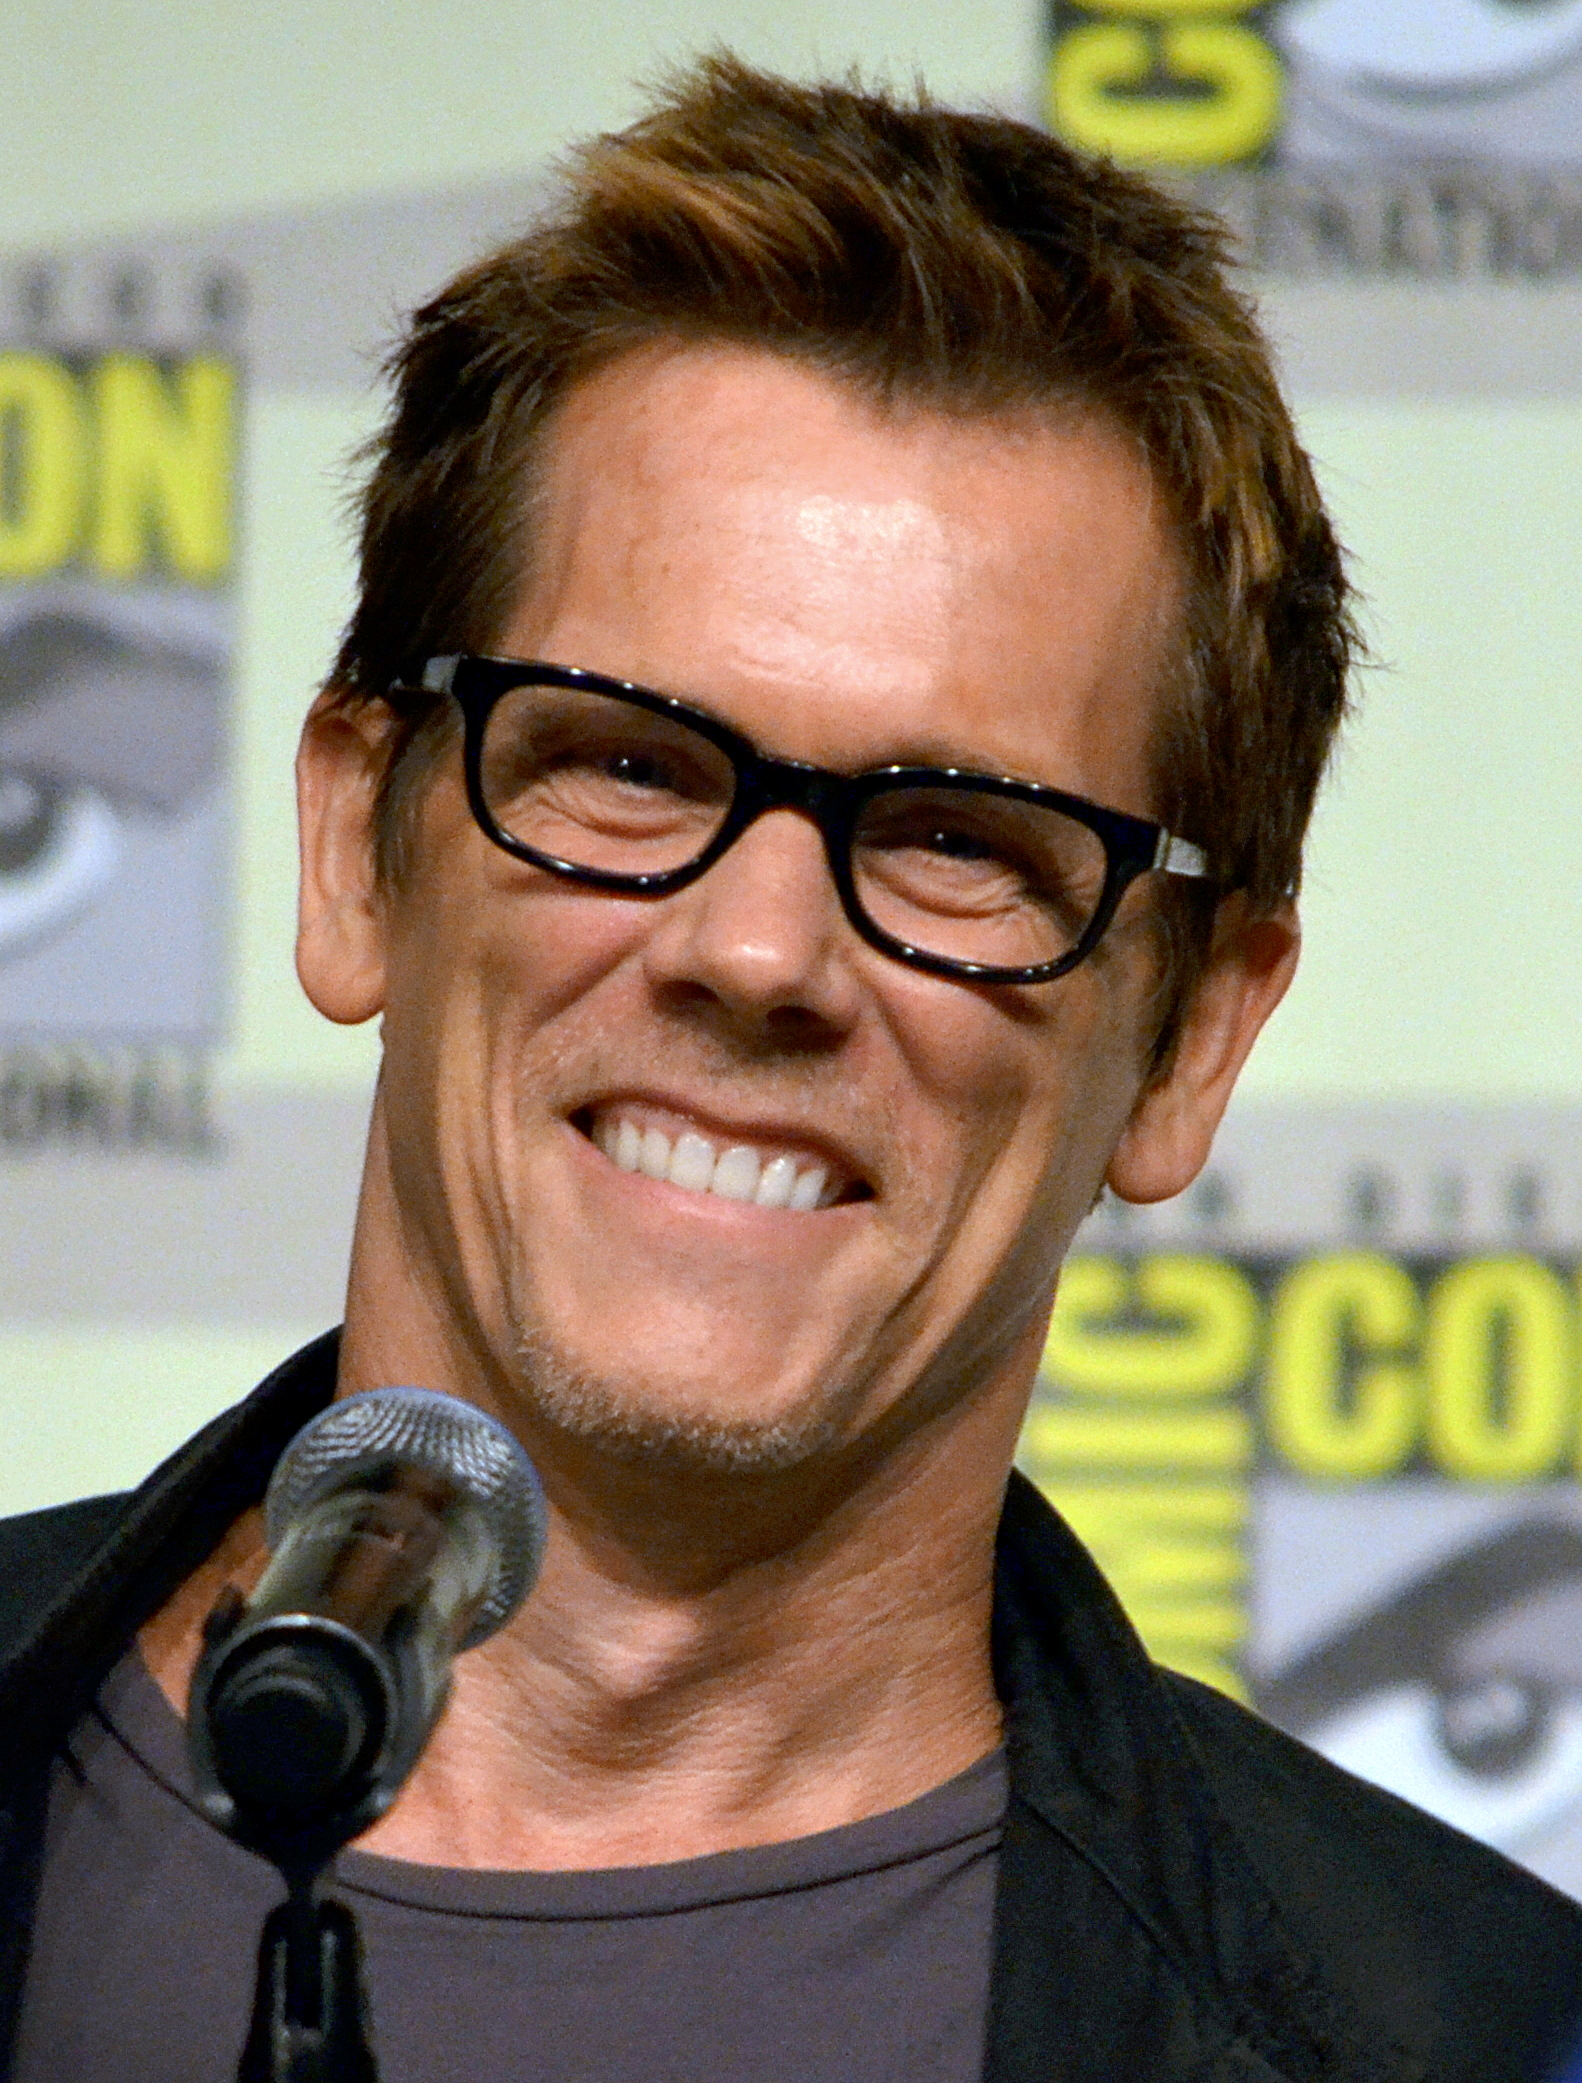 kevin bacon imdbkevin bacon dance, kevin bacon gif, kevin bacon number, kevin bacon footloose, kevin bacon in friday the 13th, kevin bacon movies, kevin bacon height, kevin bacon filmleri, kevin bacon imdb, kevin bacon tremors, kevin bacon james purefoy, kevin bacon long hair, kevin bacon 2017, kevin bacon wiki, kevin bacon darkness, kevin bacon sleepers, kevin bacon astrotheme, kevin bacon german, kevin bacon sinemalar, kevin bacon dancing